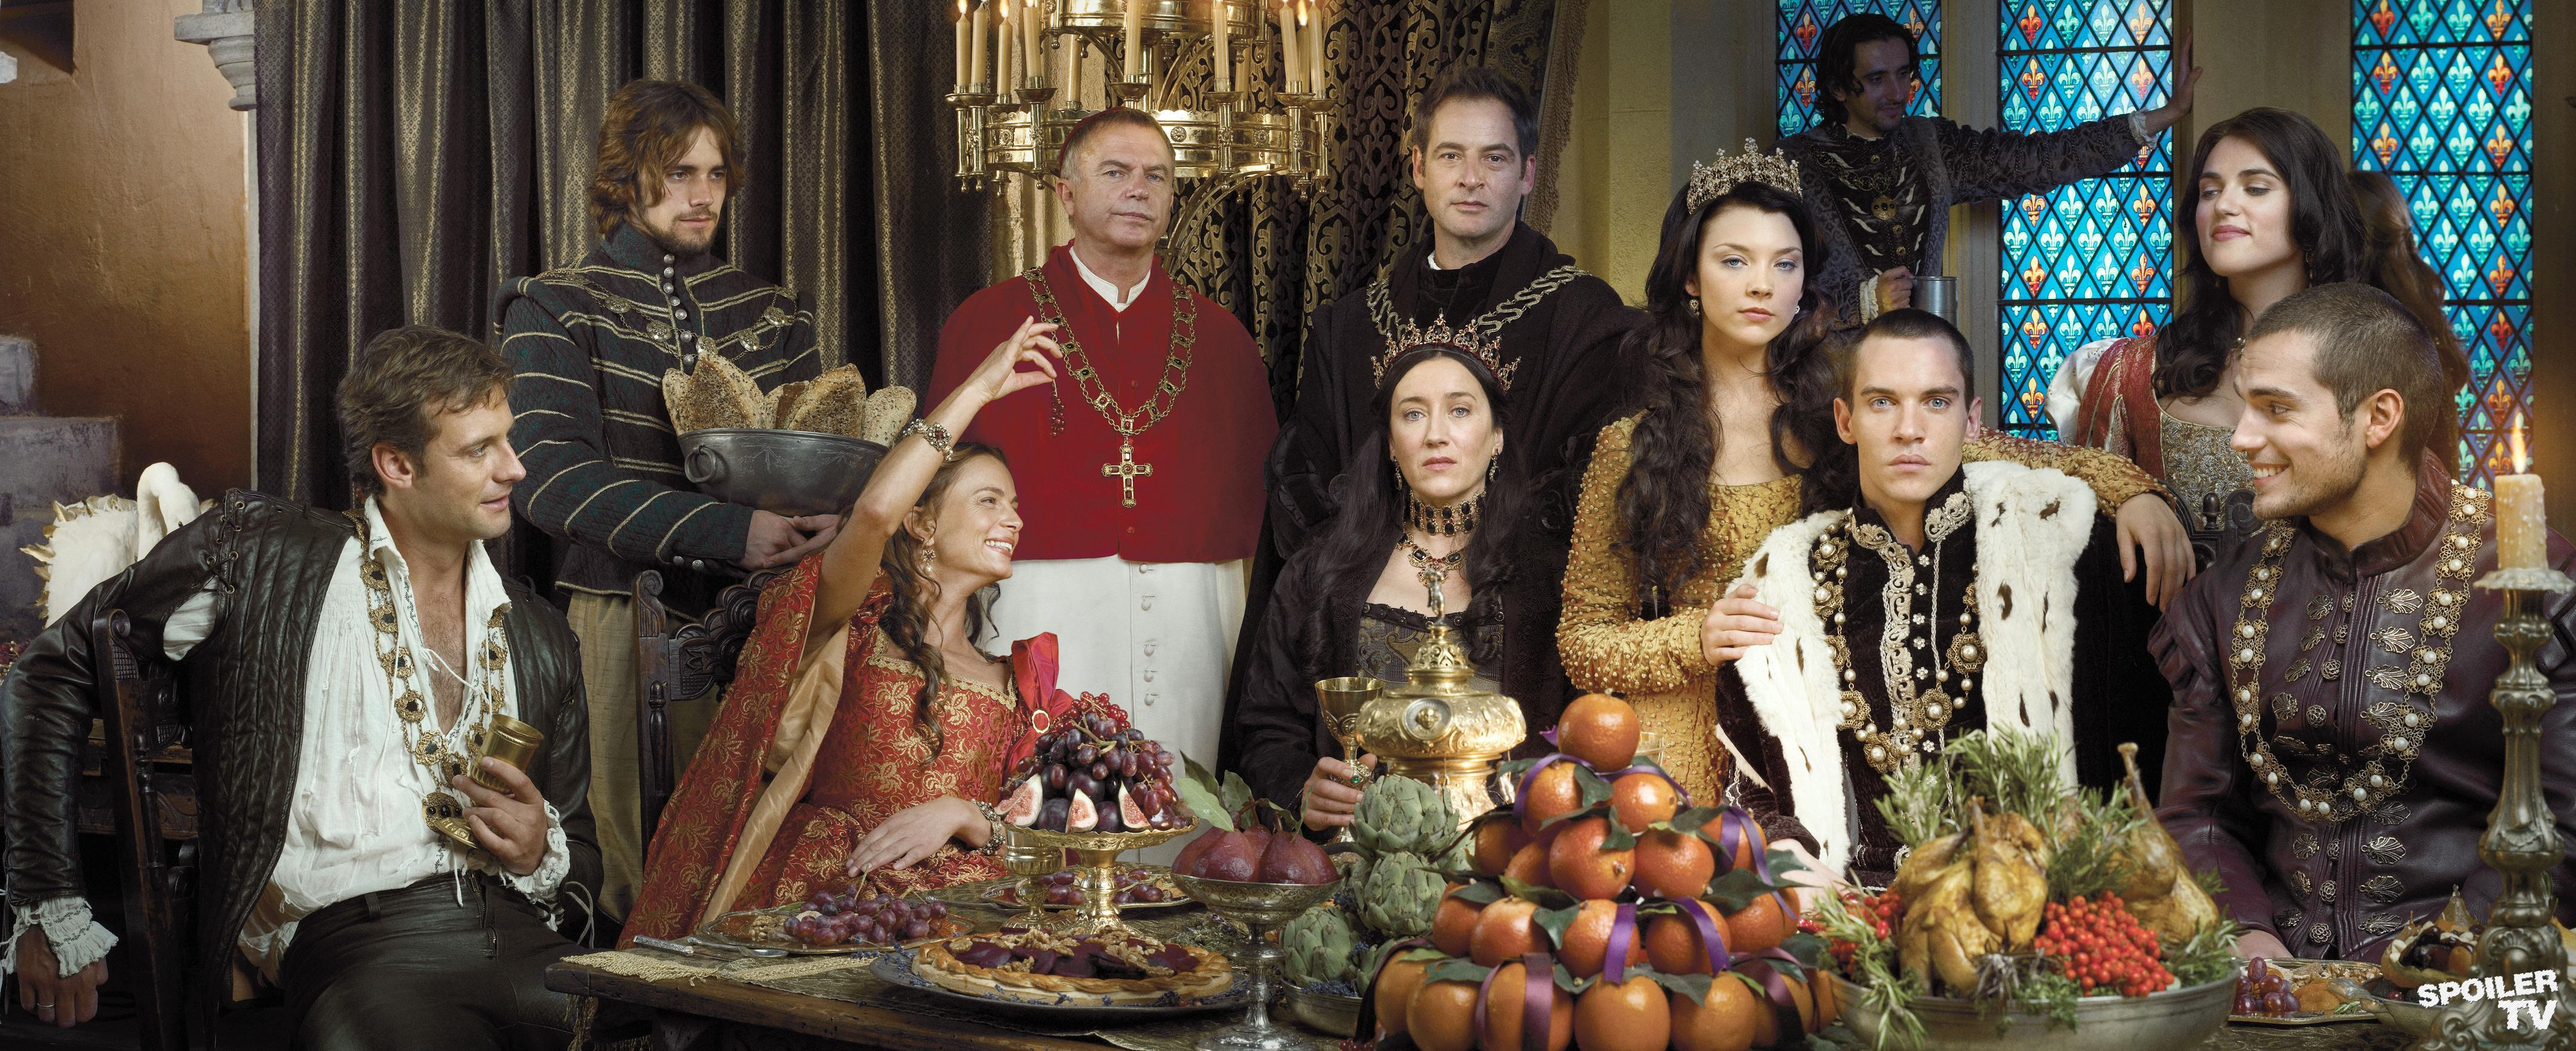 Image result for the tudors cast